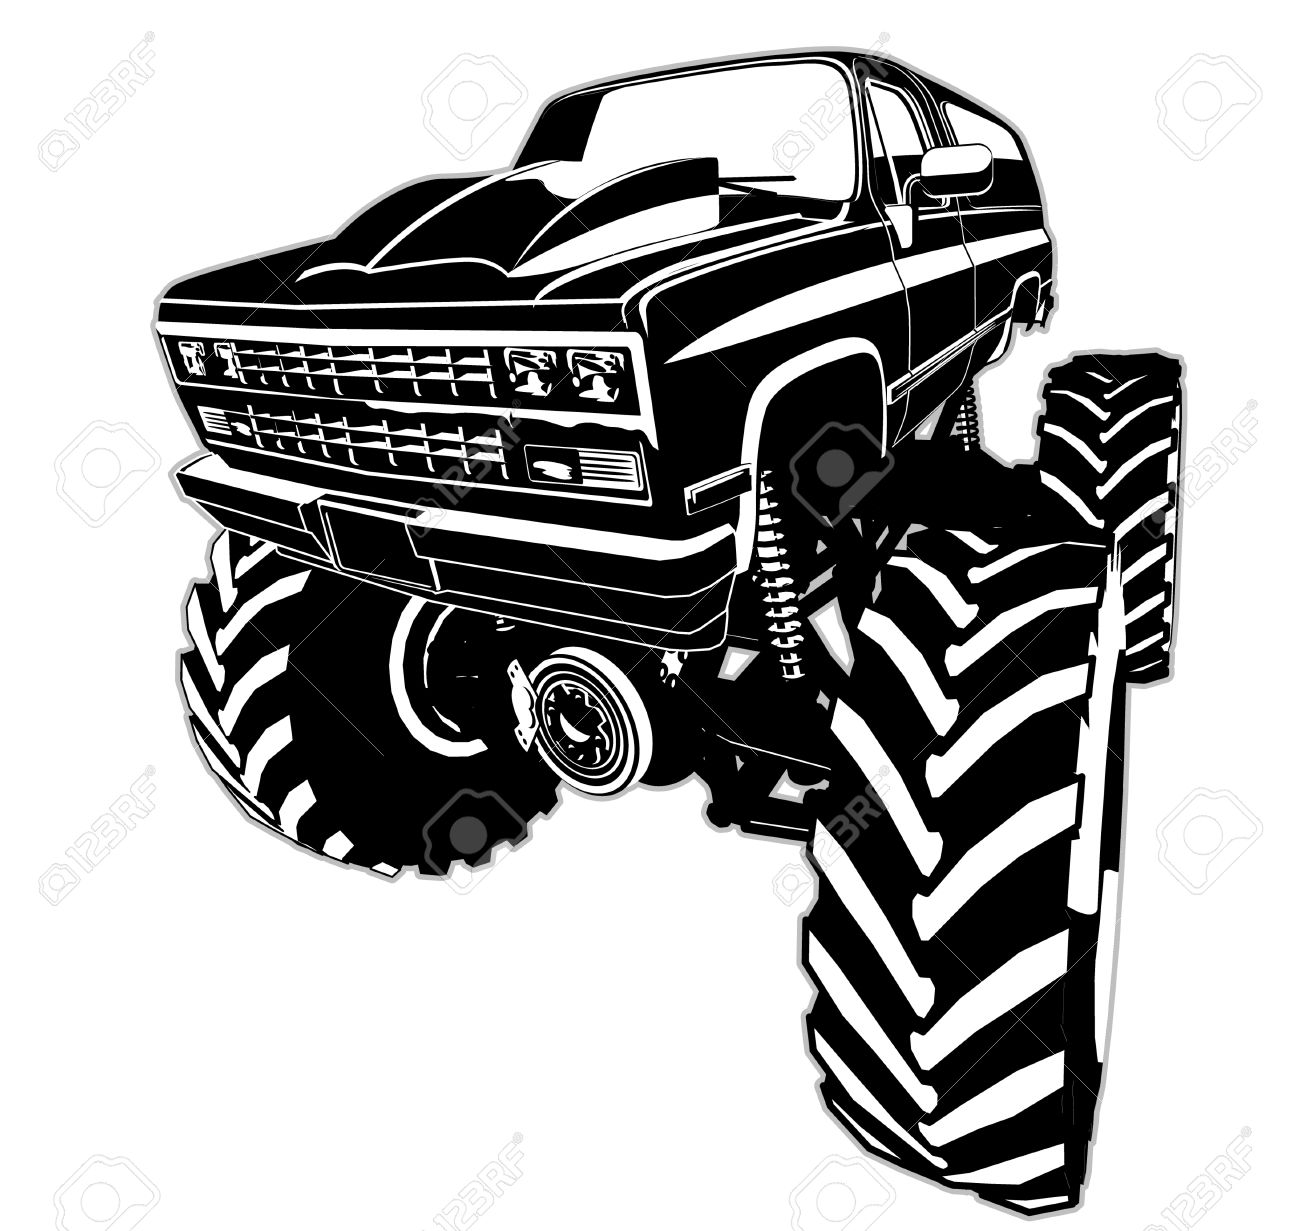 Off road vehicle clipart clip art transparent library Monster Truck Clipart Free | Free download best Monster Truck ... clip art transparent library